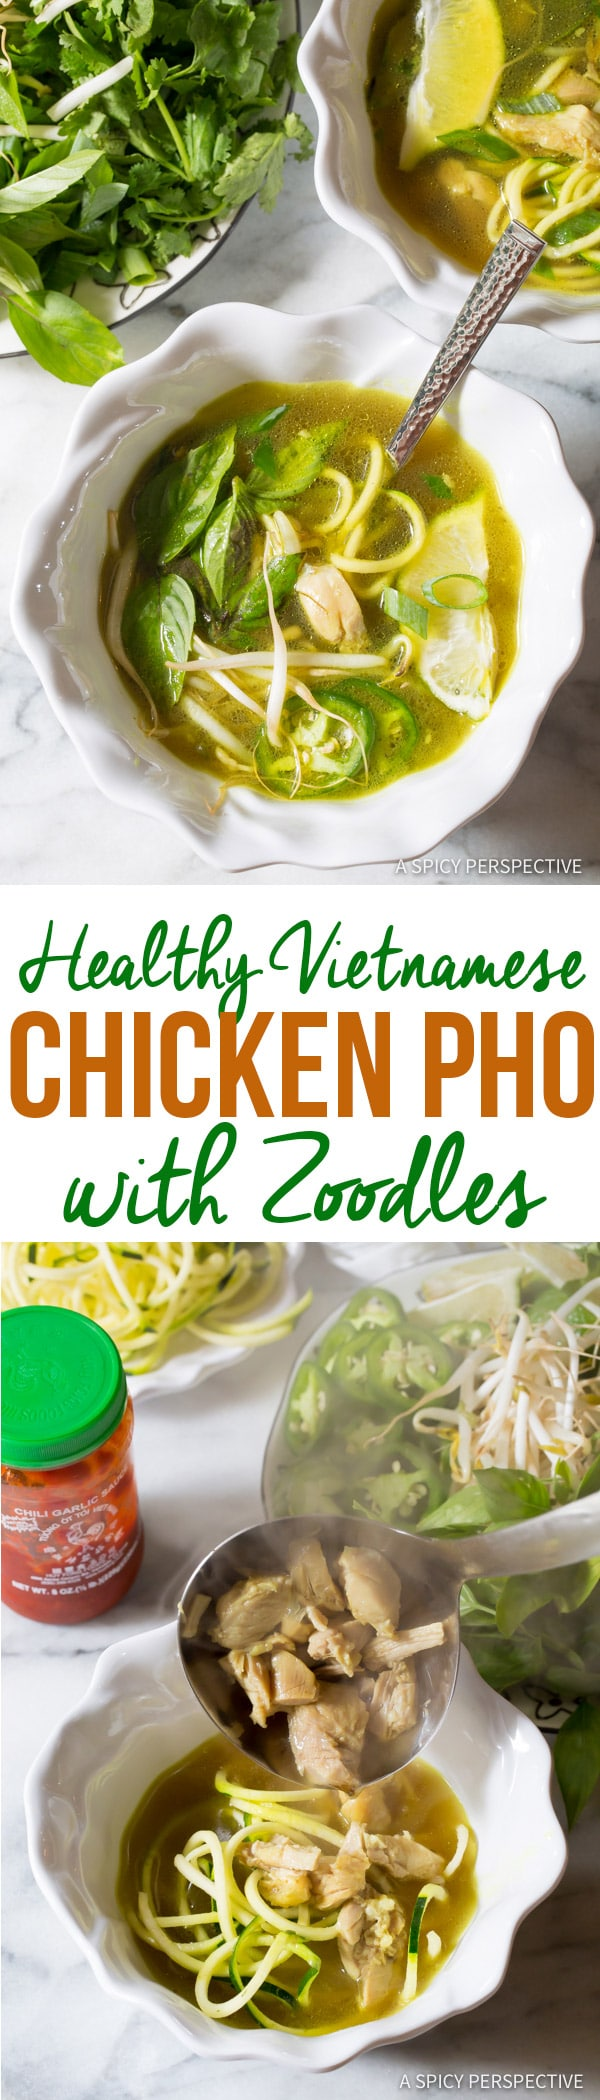 Healthy Vietnamese Chicken Pho with Zoodles   ASpicyPerspective.com